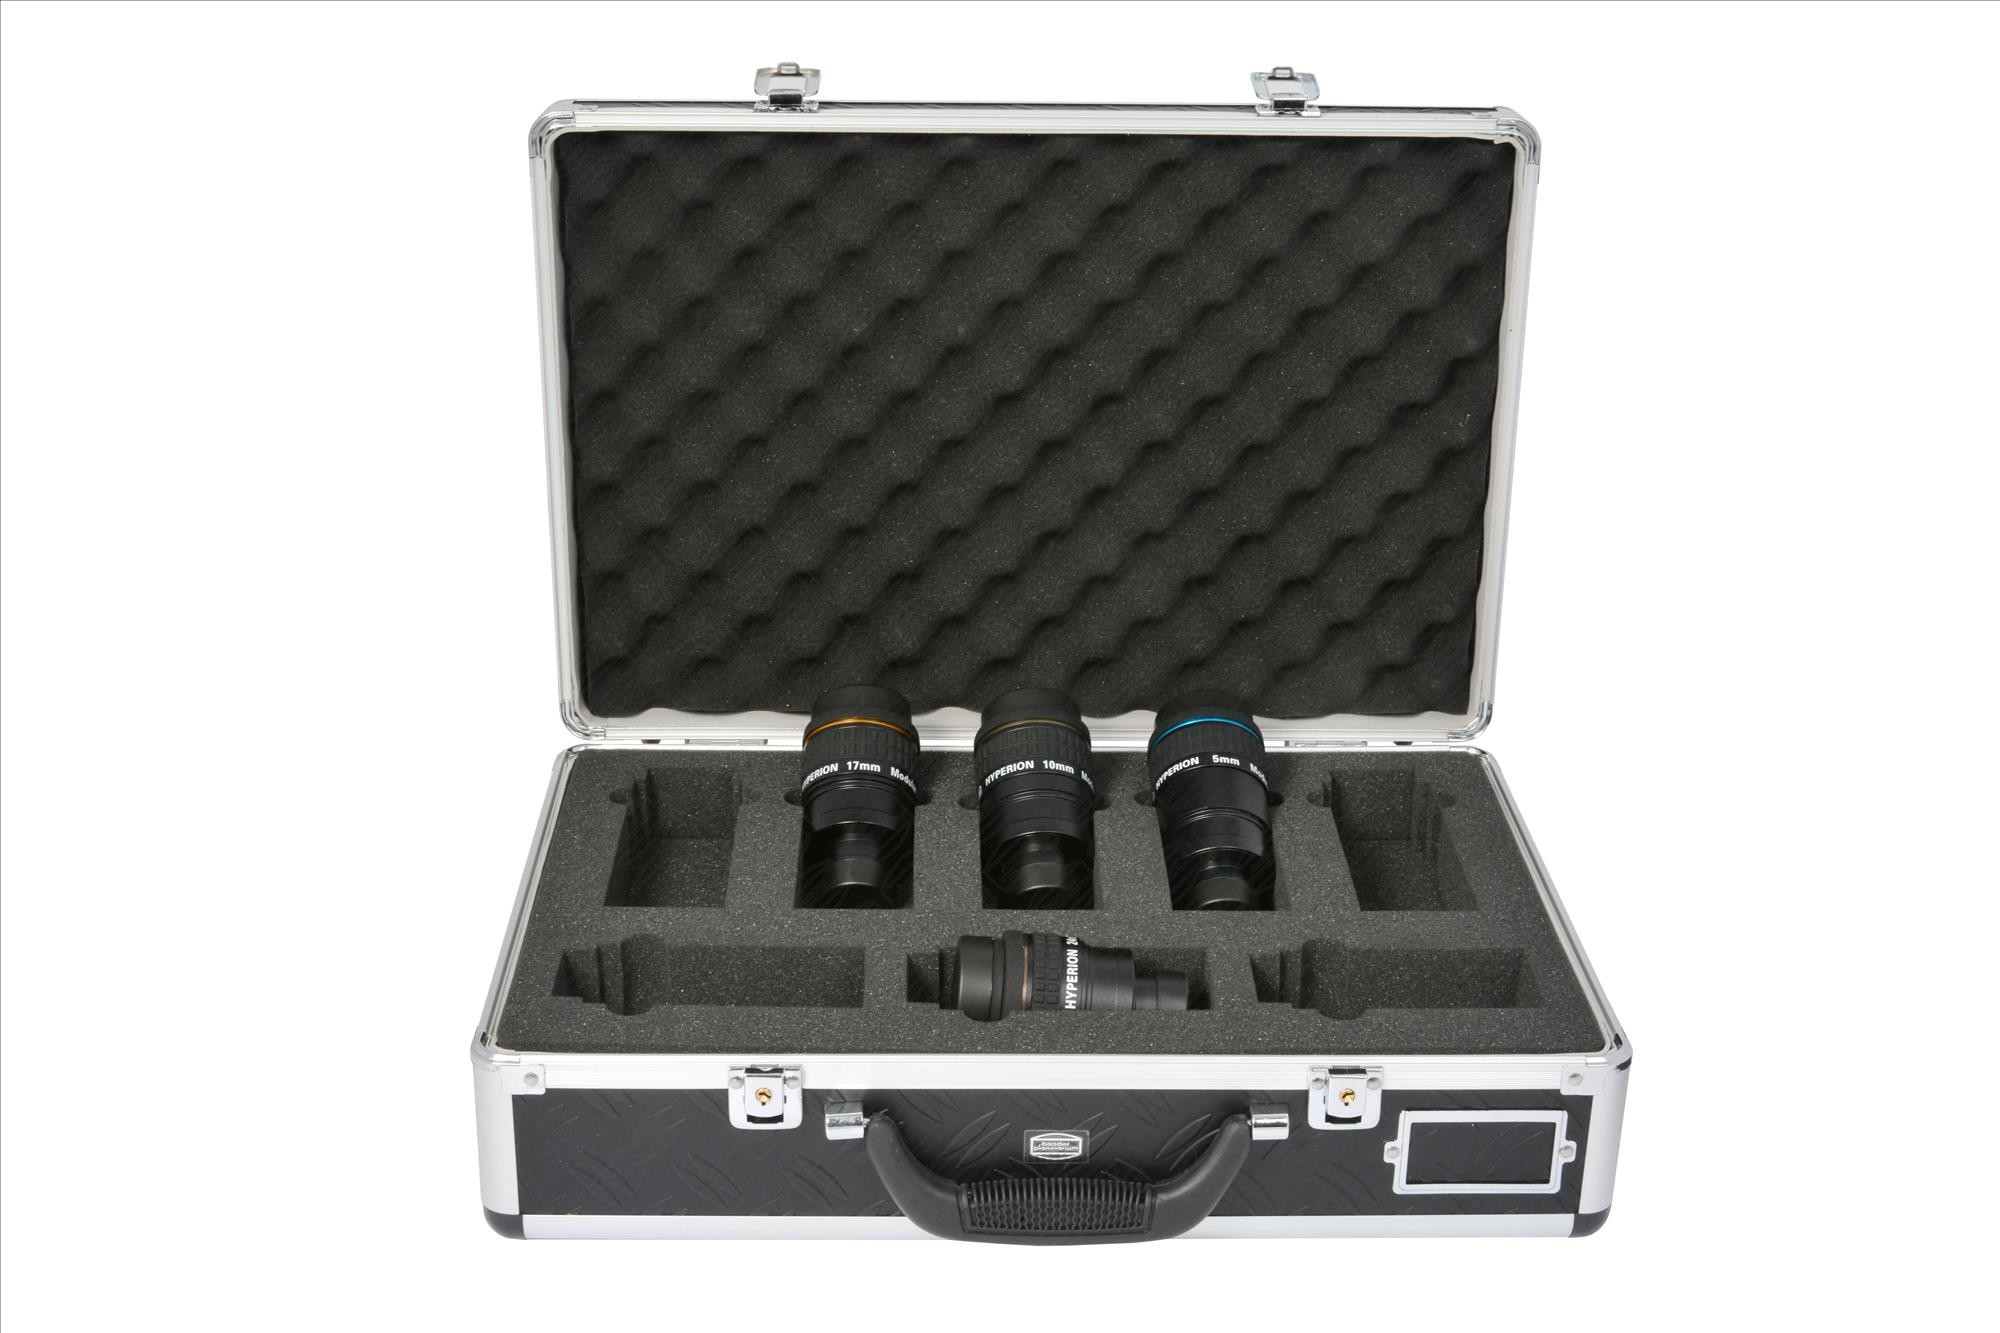 Starter Set of Hyperion Eyepieces 5/10/17/24mm  - incl. Eyepiece-Case and winged eyerest (#2454654) for each set-eyepiece